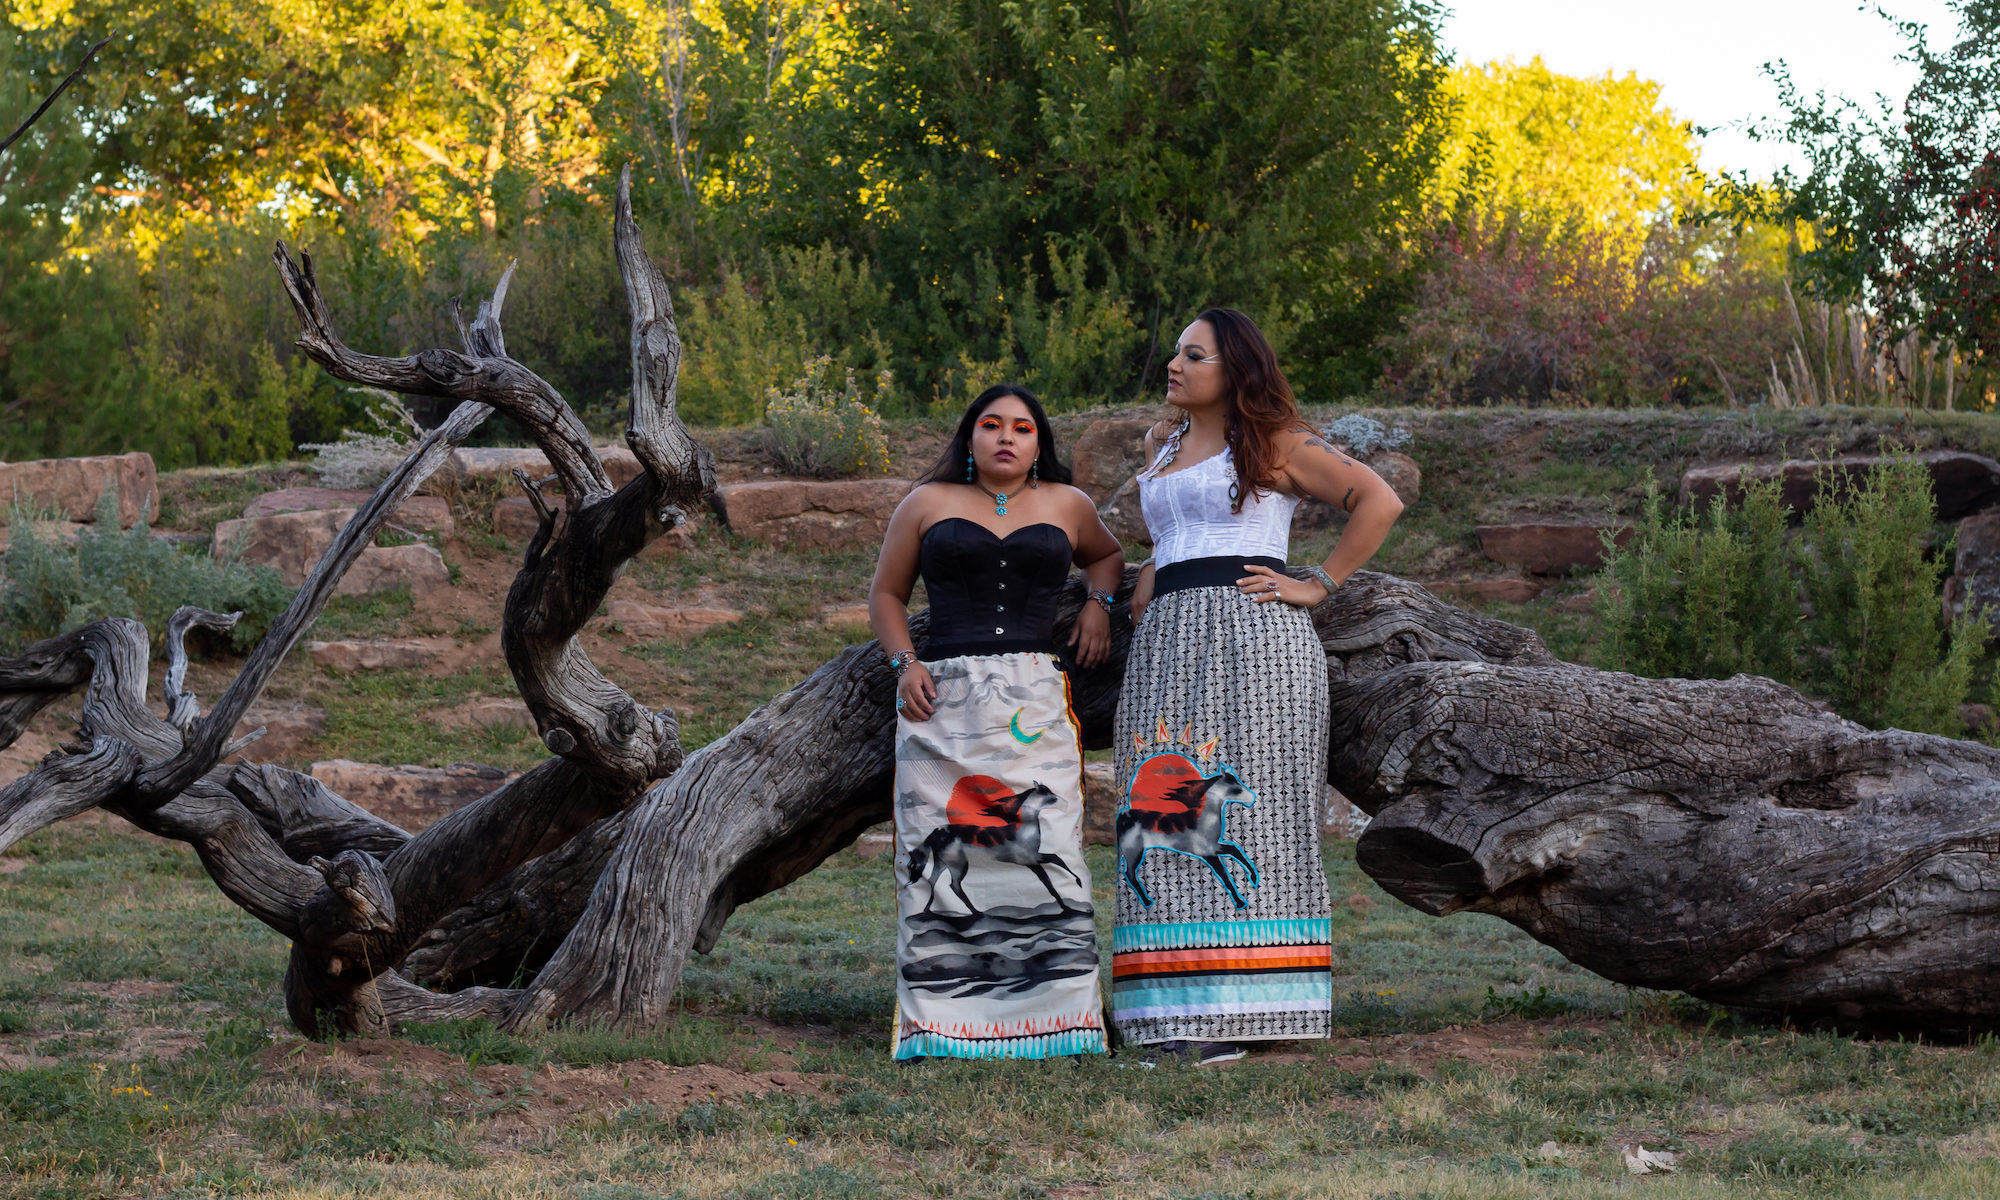 Photo shoot by Neebin Studios for Kawe Rezilience. Models and co-owners: Monica (Diné) and Felicia (Anishinaabe).